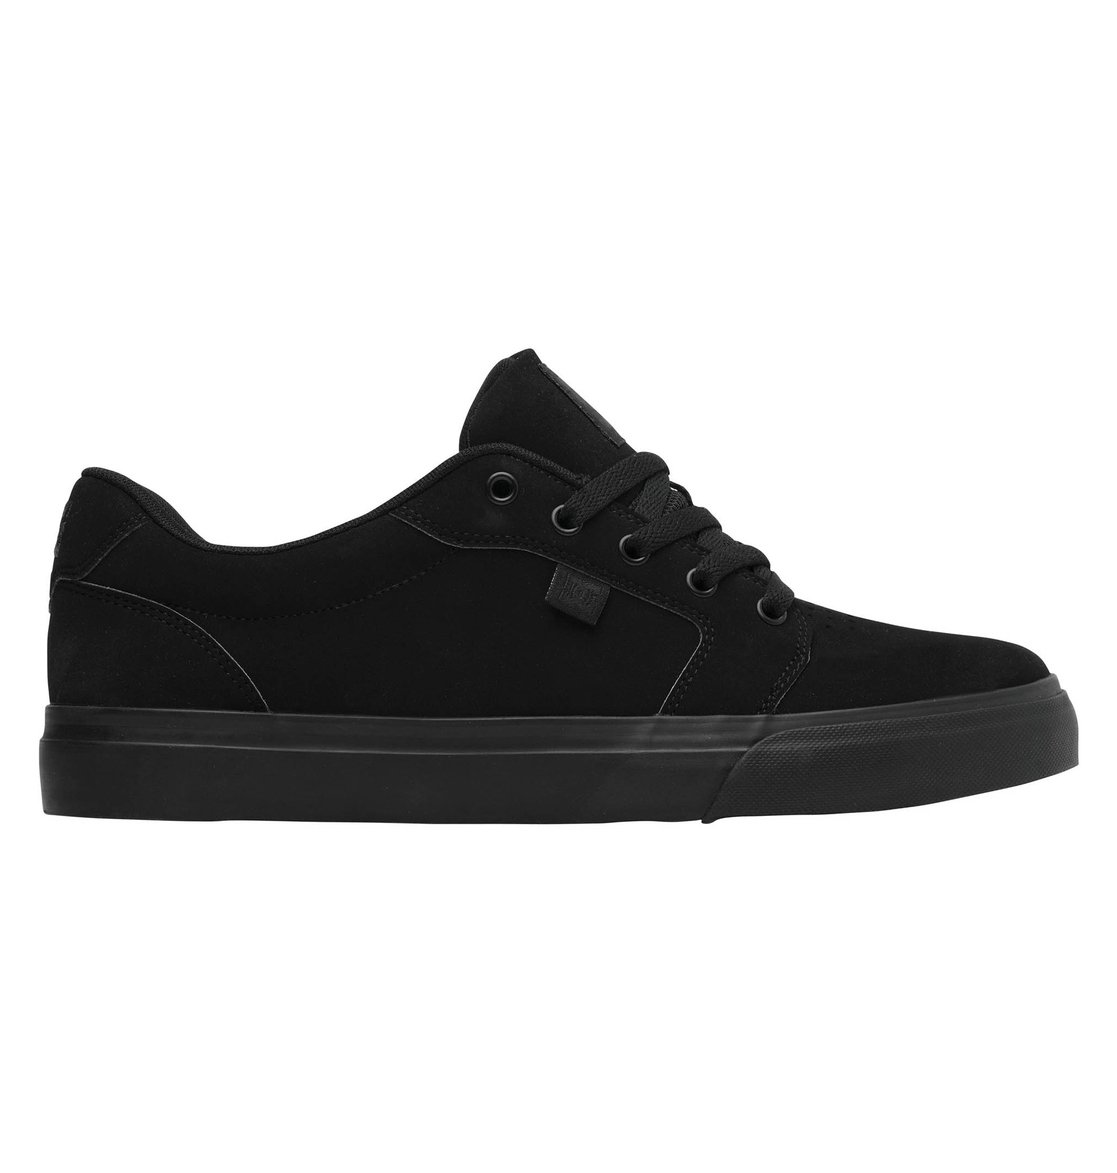 Top Rated Skateboard Shoes